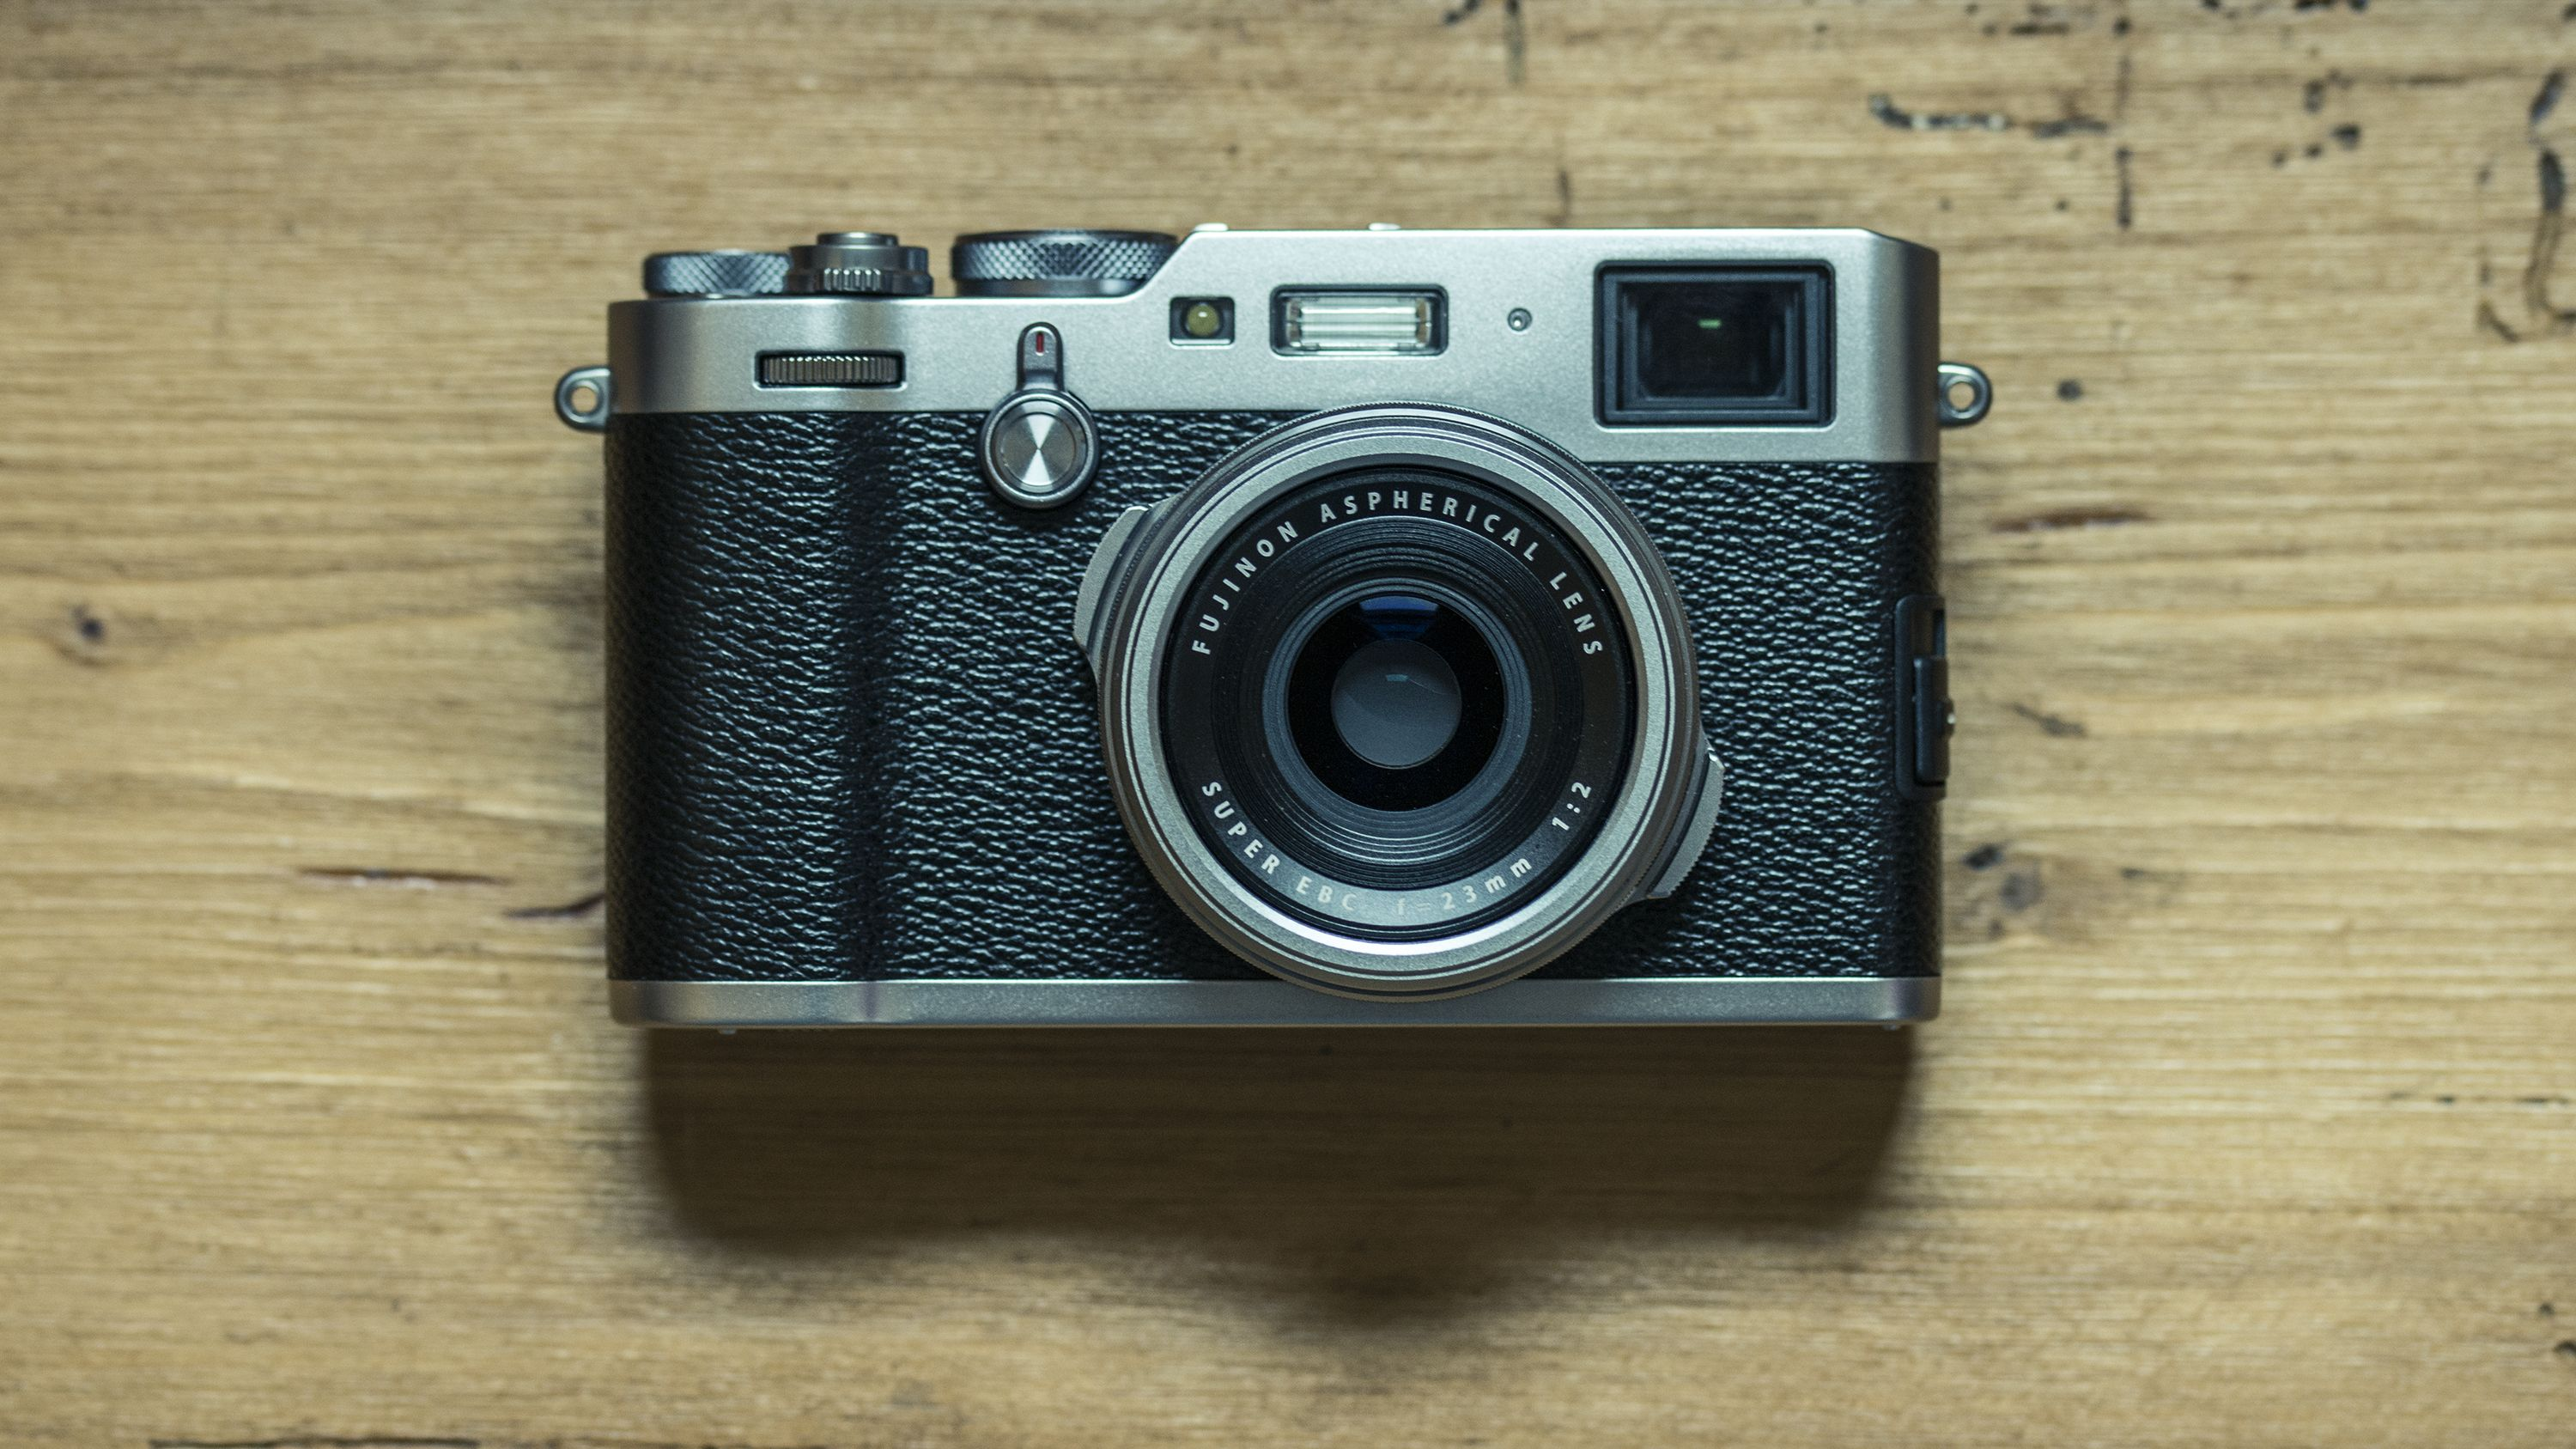 The best compact cameras available in India